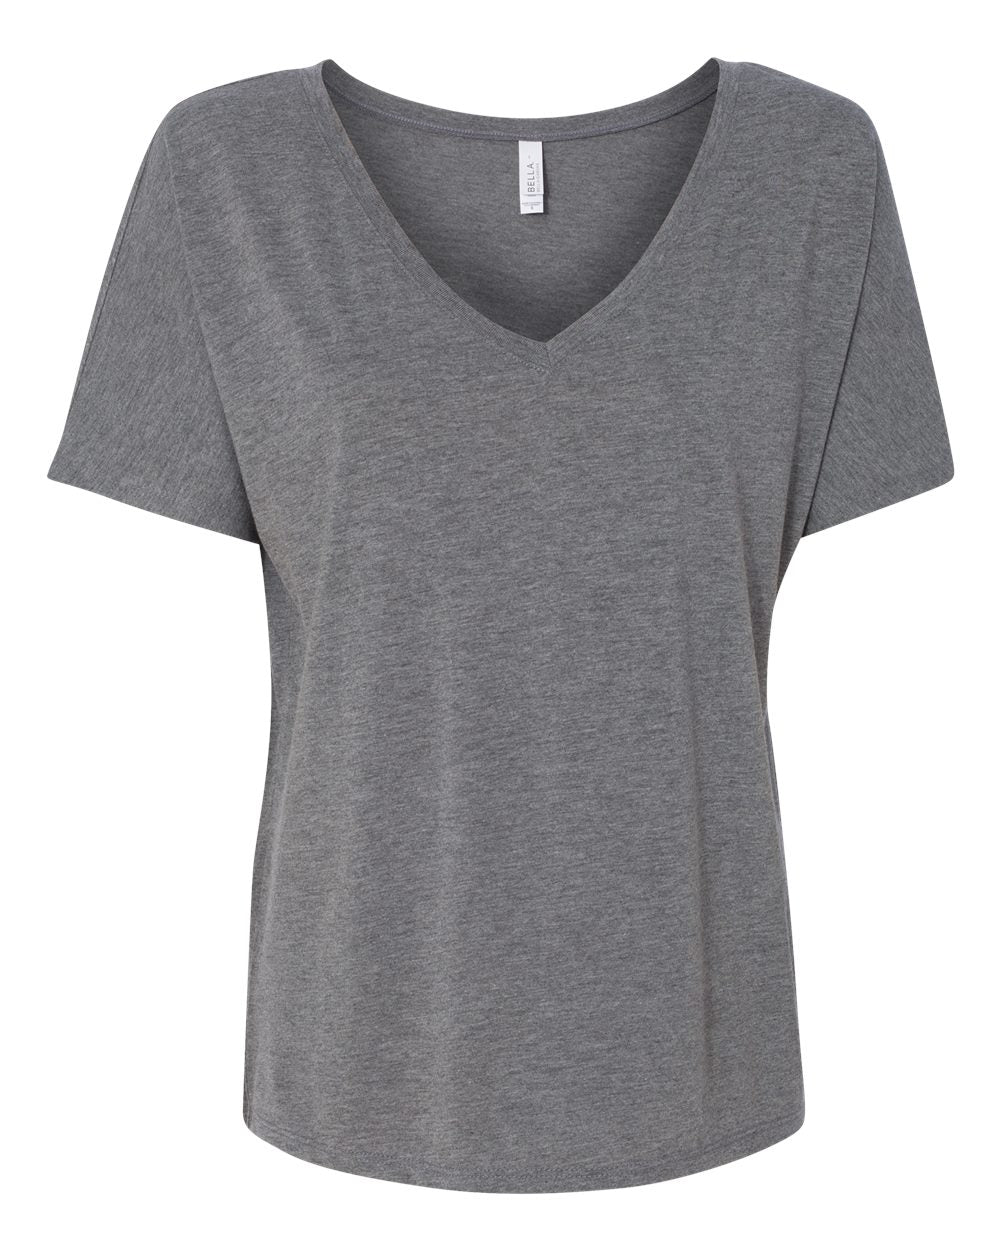 Bella + Canvas 8815 Women's Slouchy V-Neck Tee